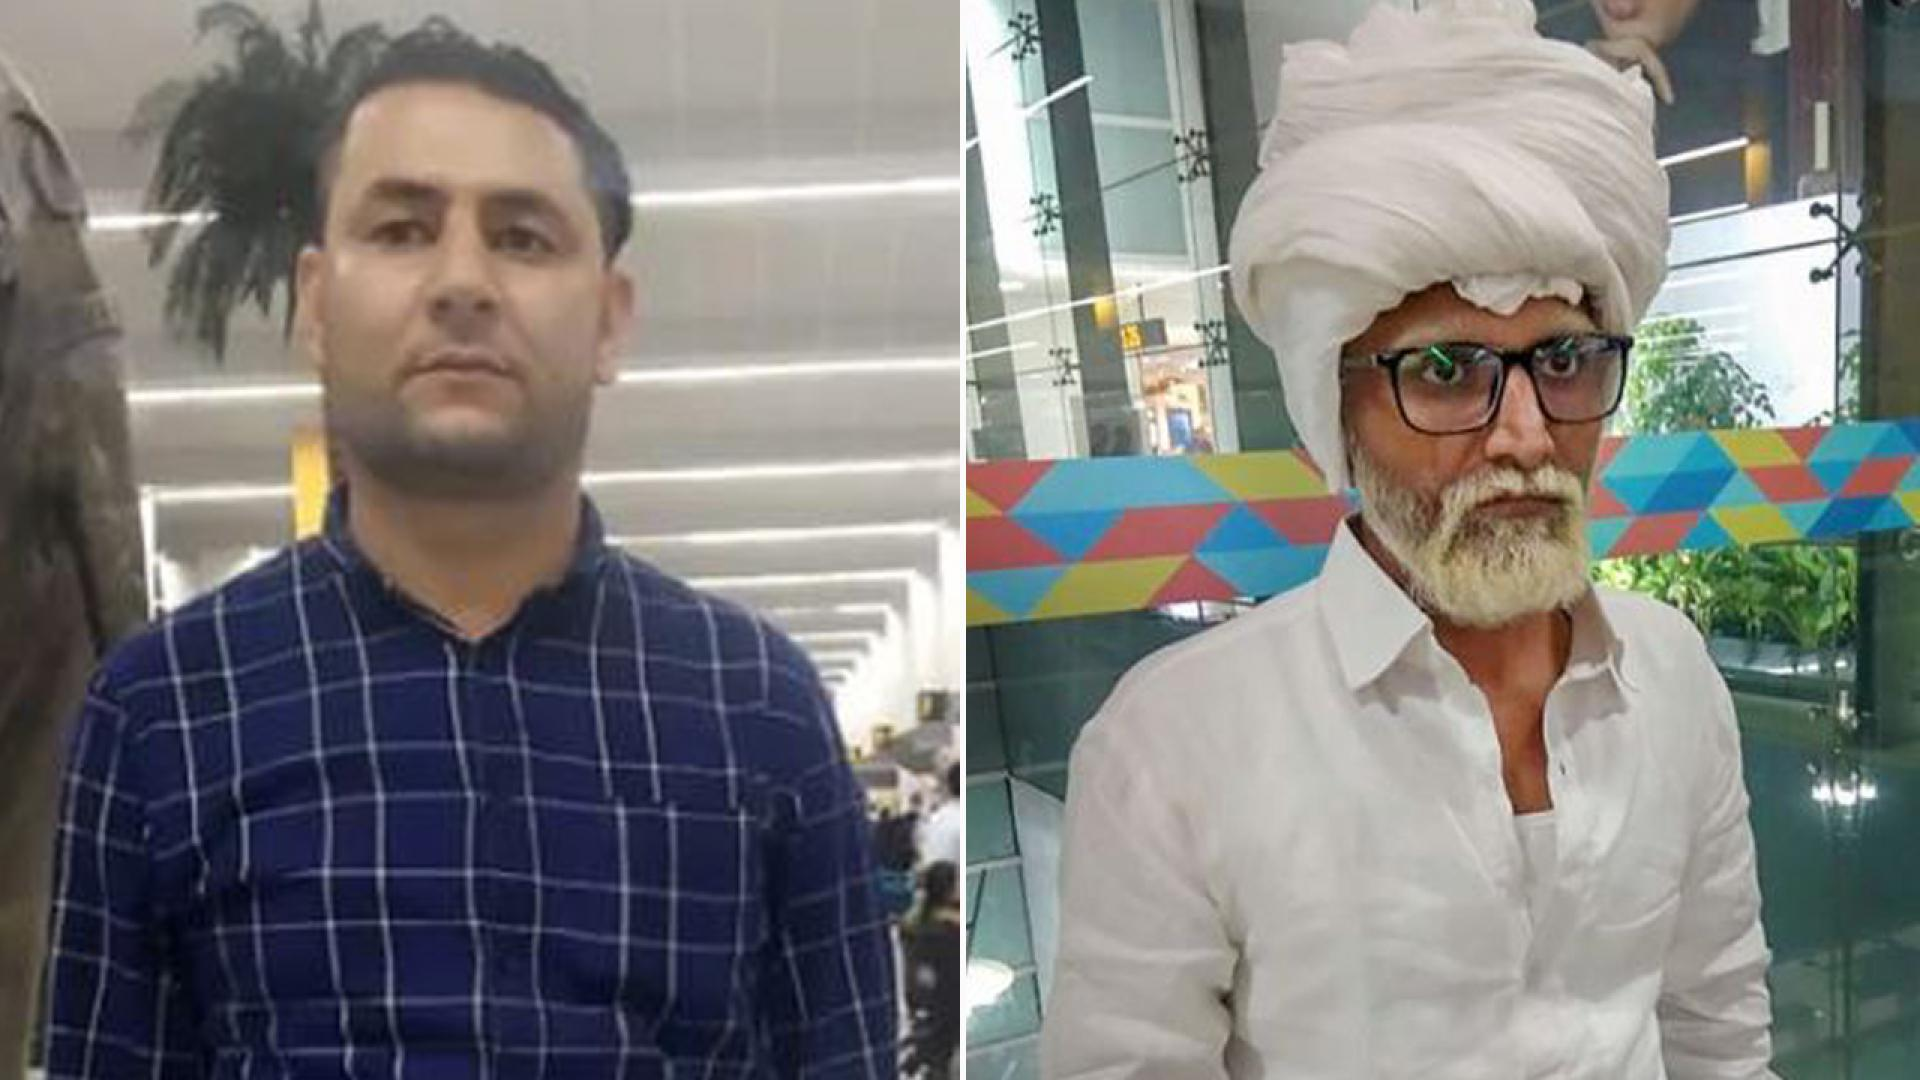 An Indian man allegedly used a fake passport and beard to try to sneak on a flight to the U.S.